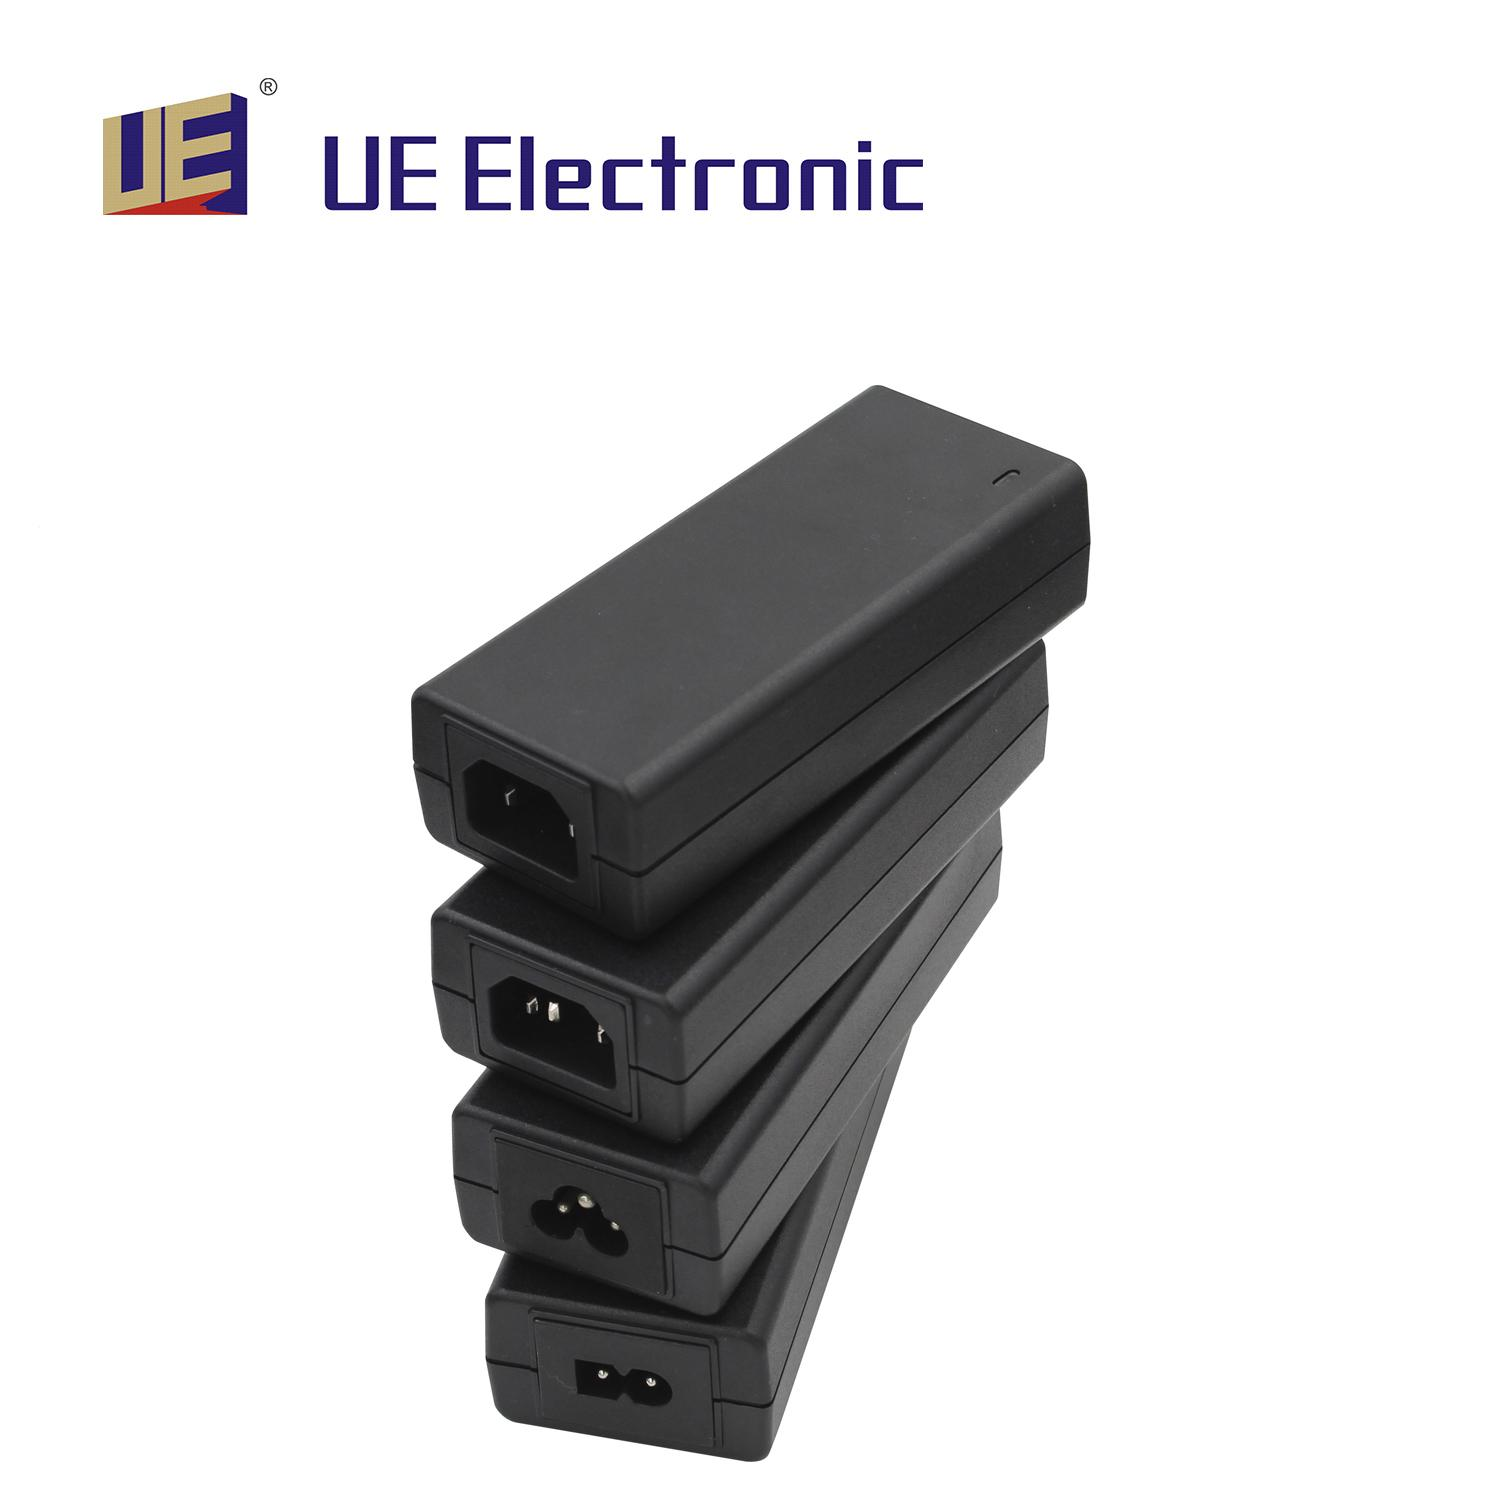 UE Electronic Desktop 48 watts medical adapter UE multi voltage power adapter